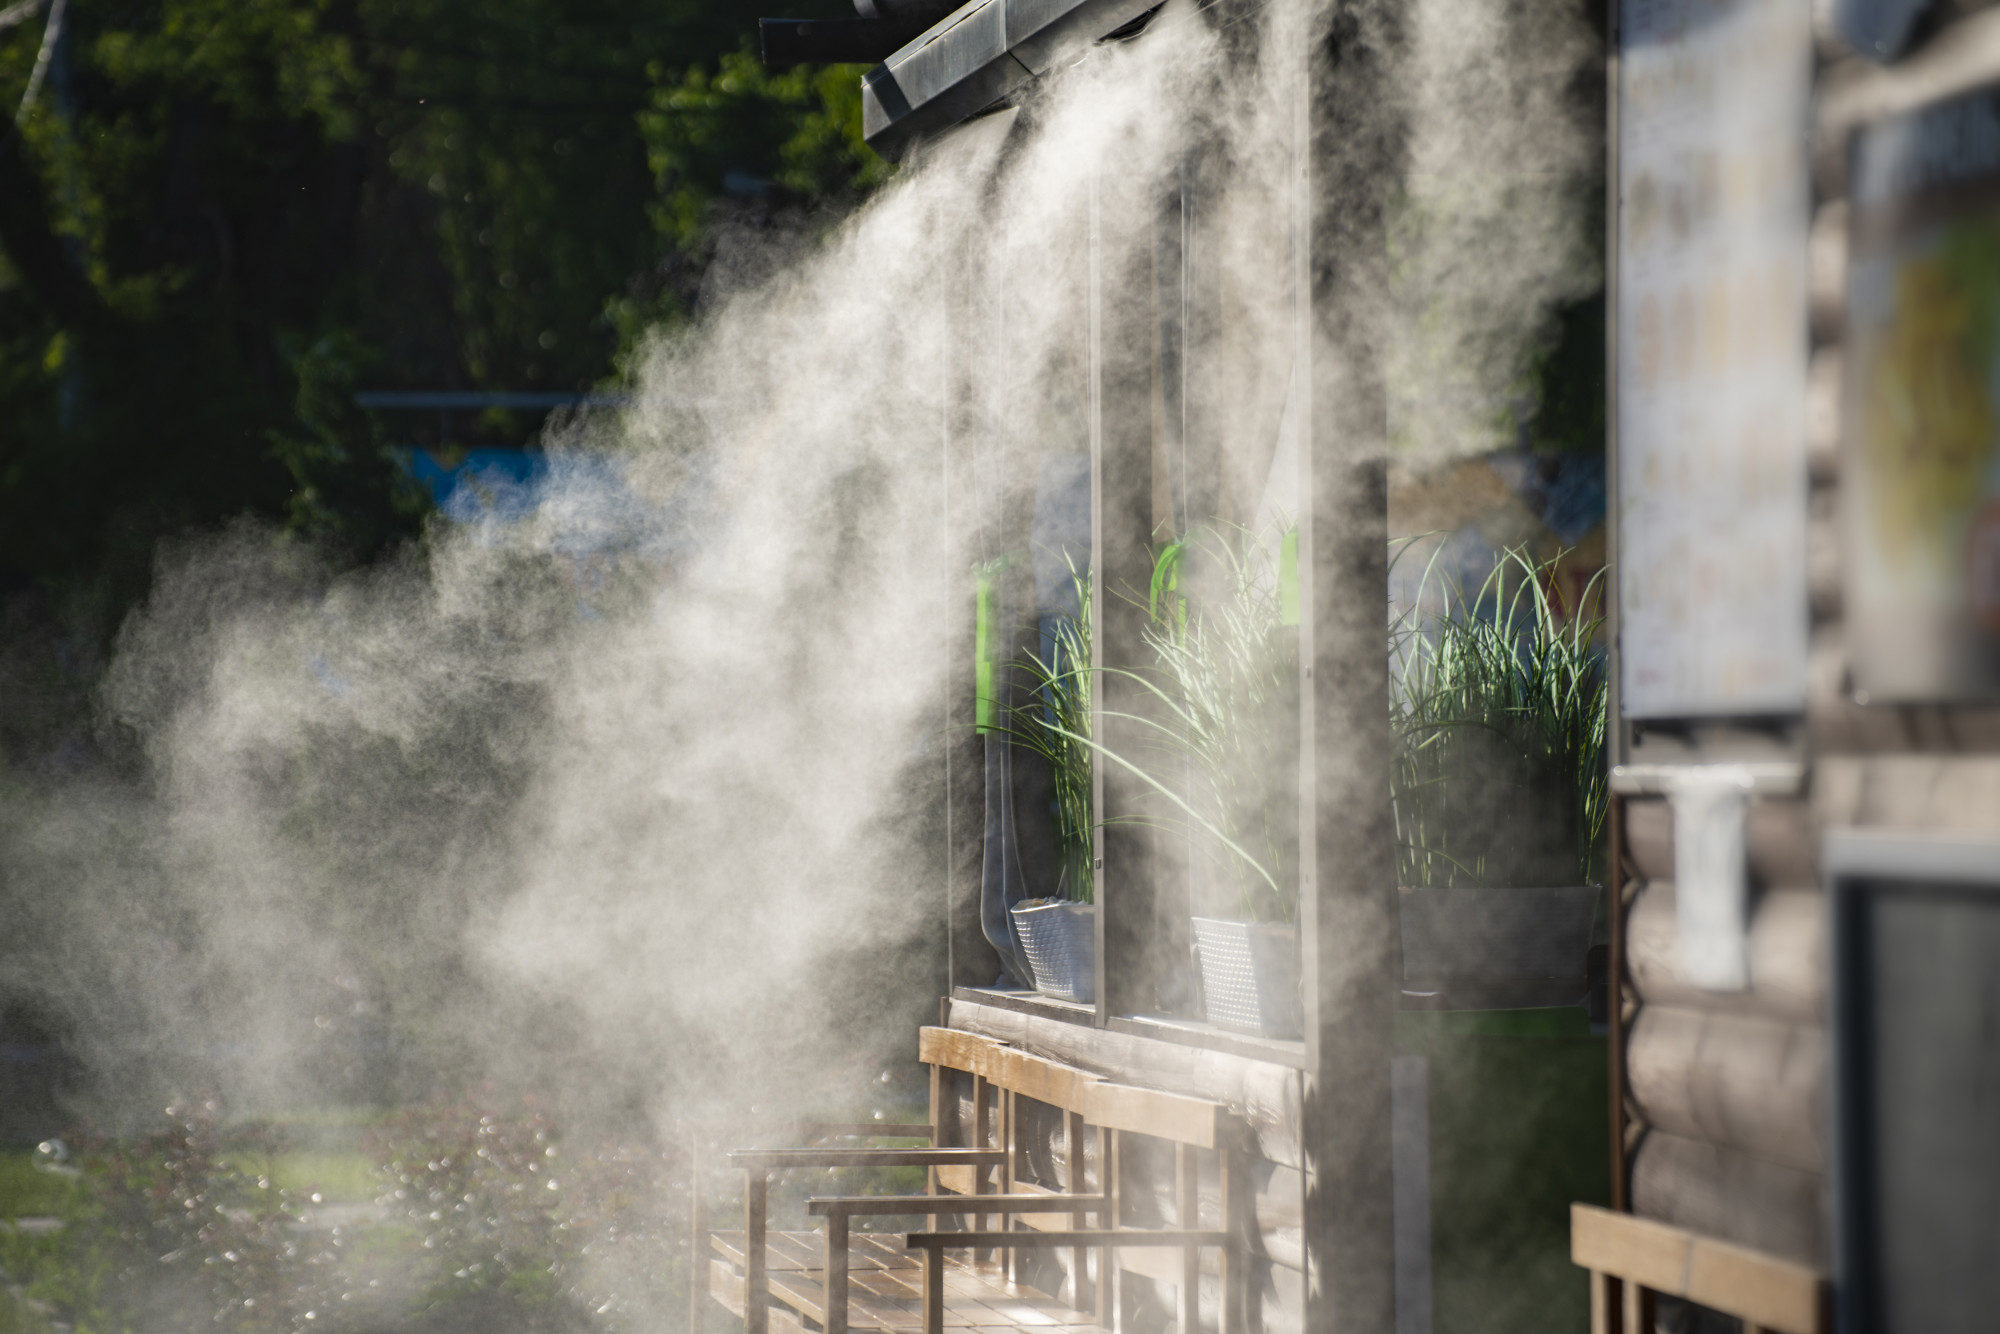 3 pros and cons of outdoor misting systems every home owner should consider sky five properties